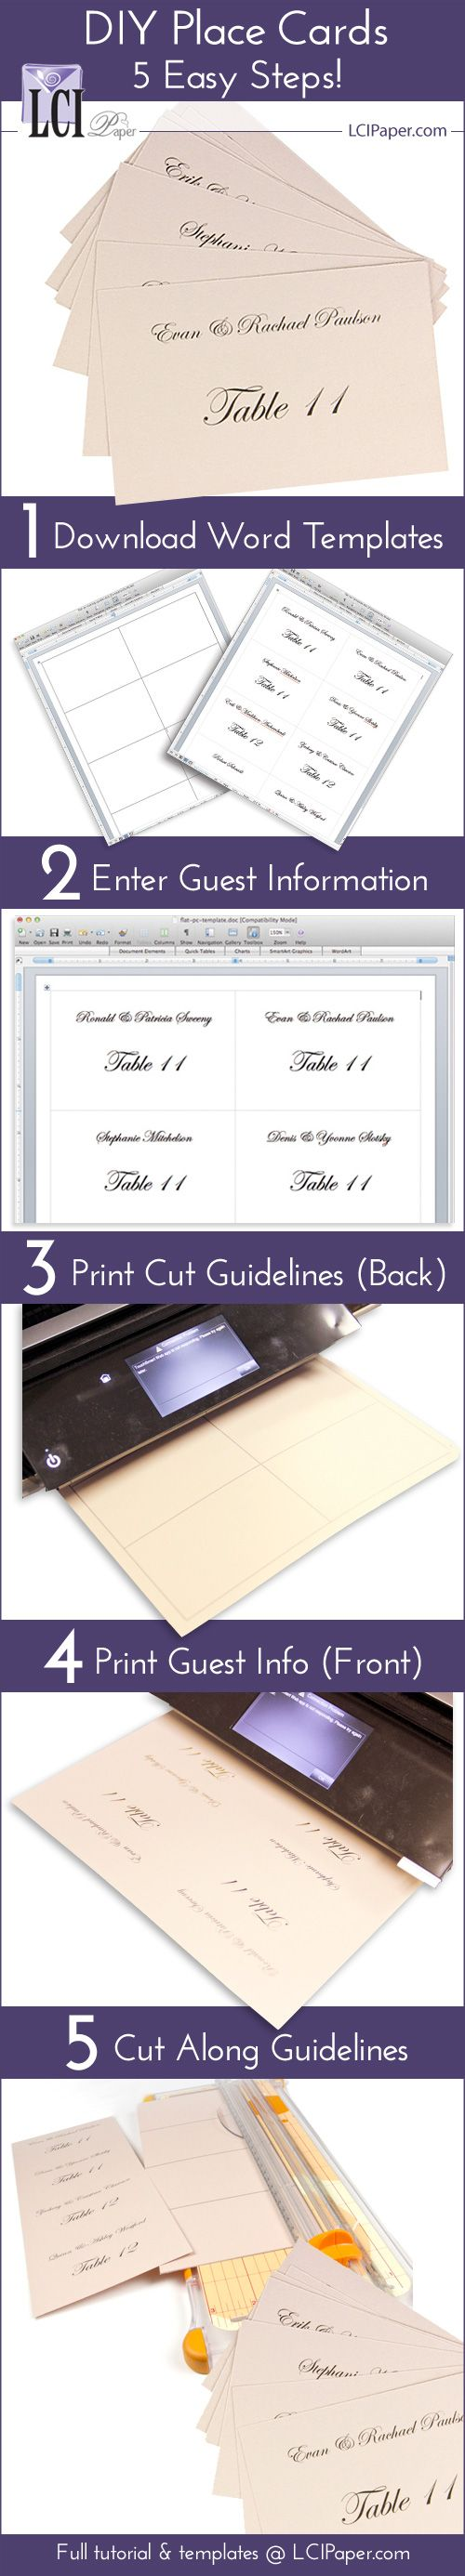 free templates for wedding response cards%0A     best DIY Wedding Inspiration images on Pinterest   Wedding placement  cards  Bridal invitations and Choices